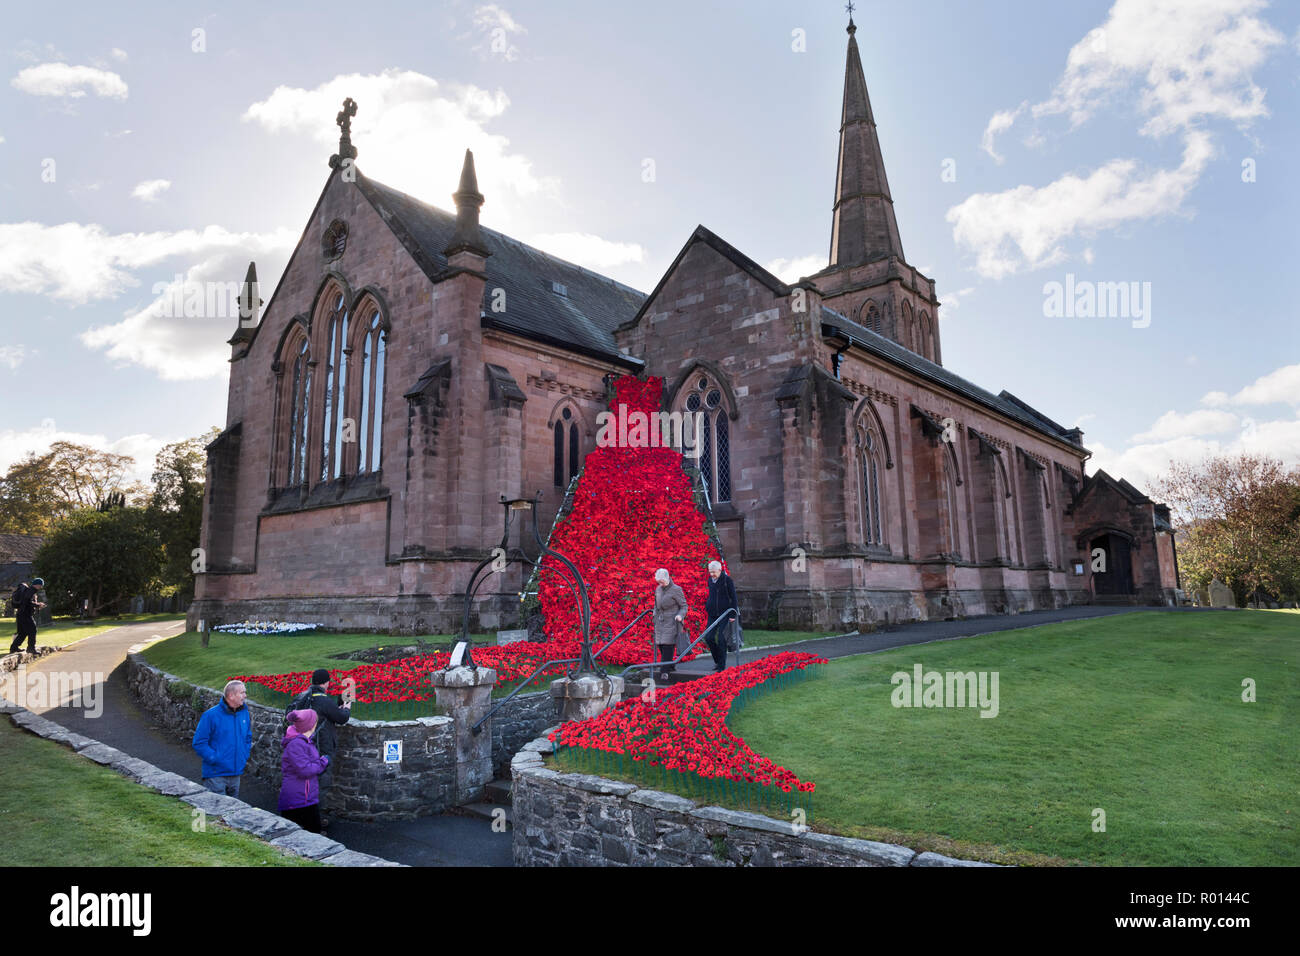 Display of poppies for Remembrance Day at St John's Church, Keswick, Cumbria, UK - Stock Image